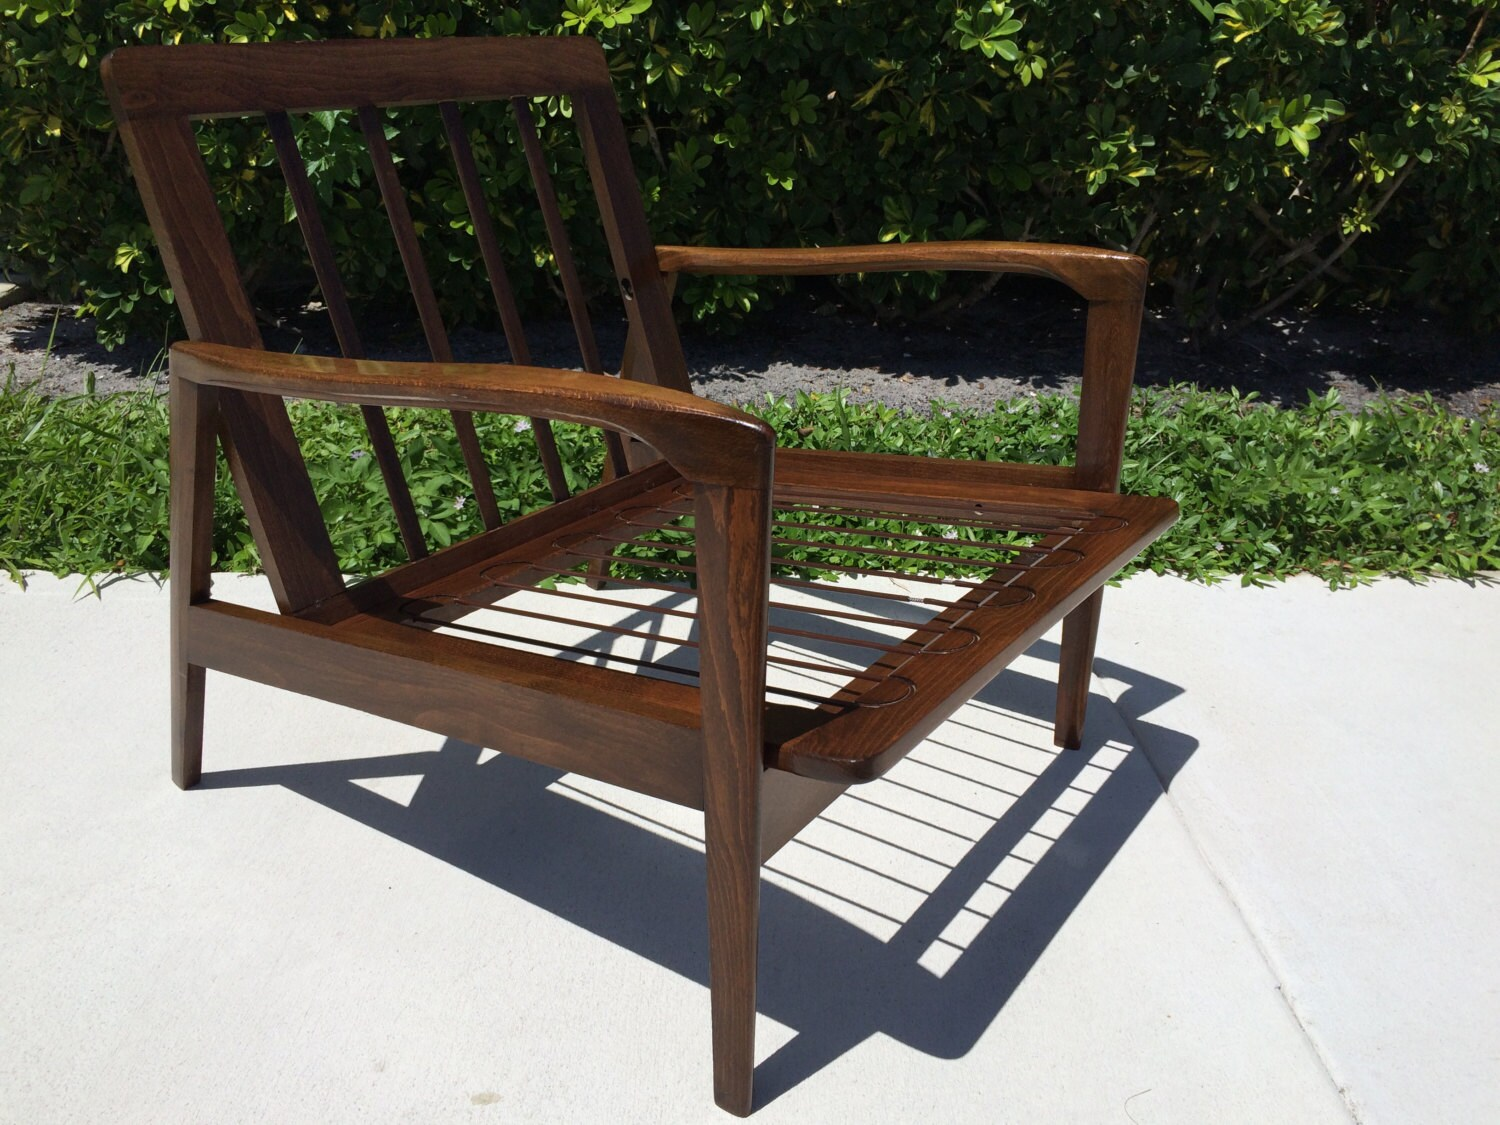 yugoslavian folding chair metal rocking chairs outdoor uk vintage mid century modern lounge signed made in